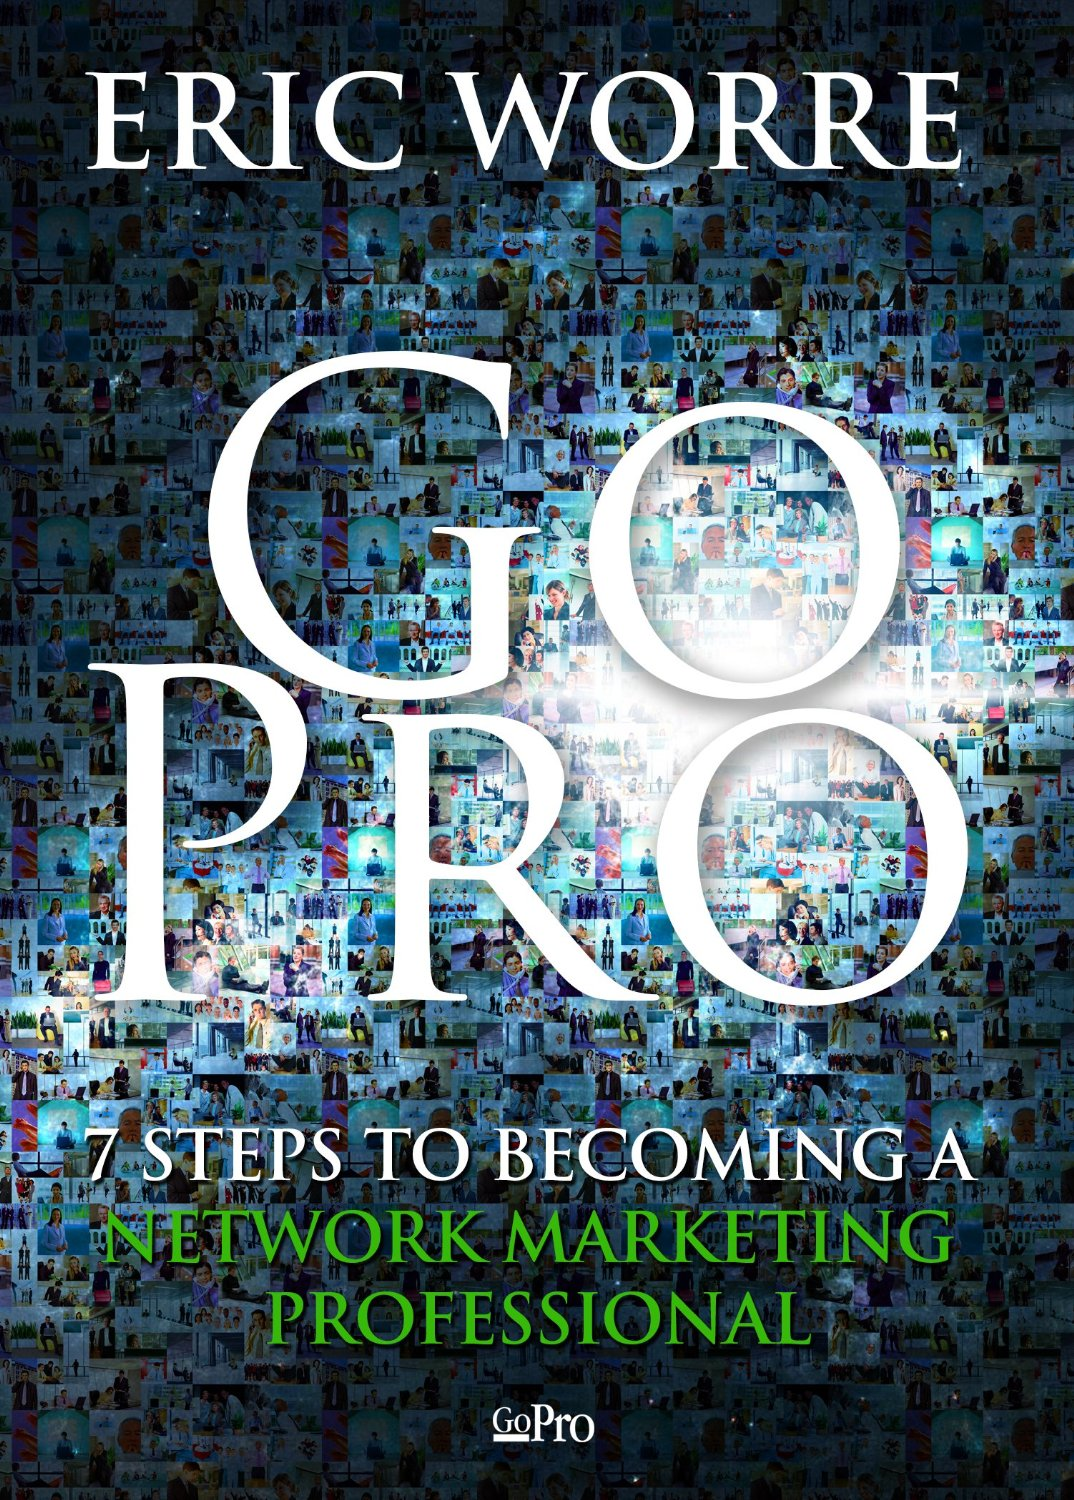 Go Pro by Eric Worre - book cover